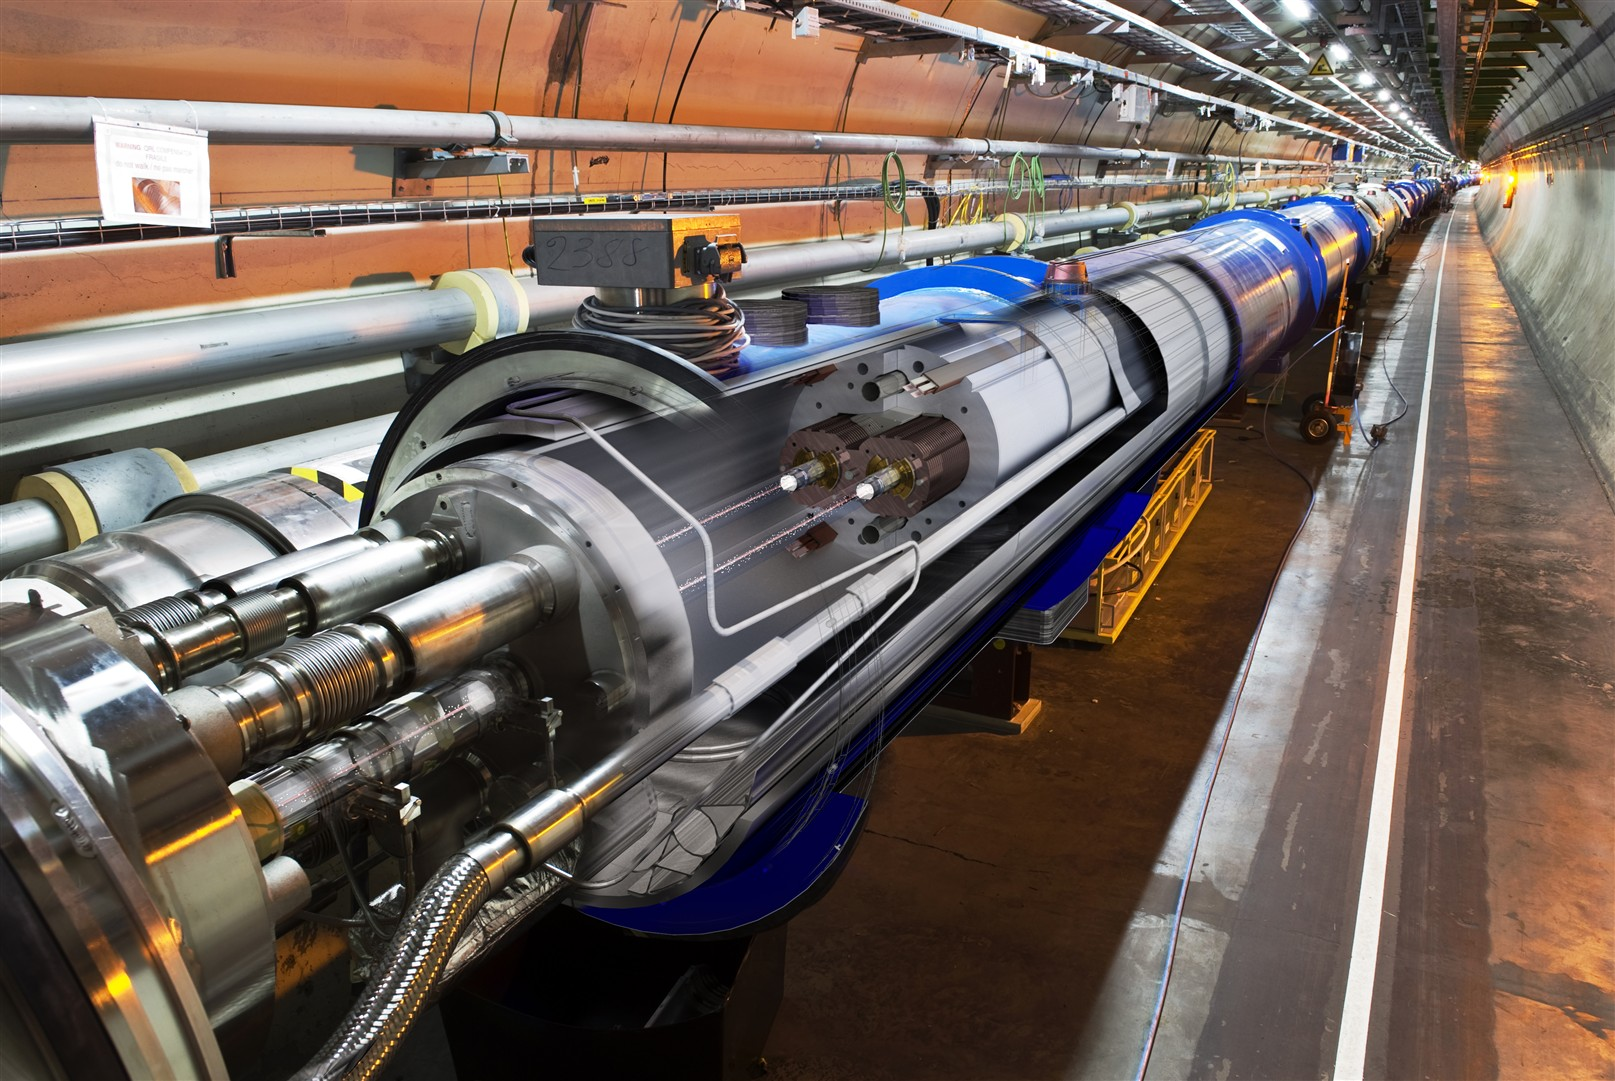 3d view photo of the LHC Machine.